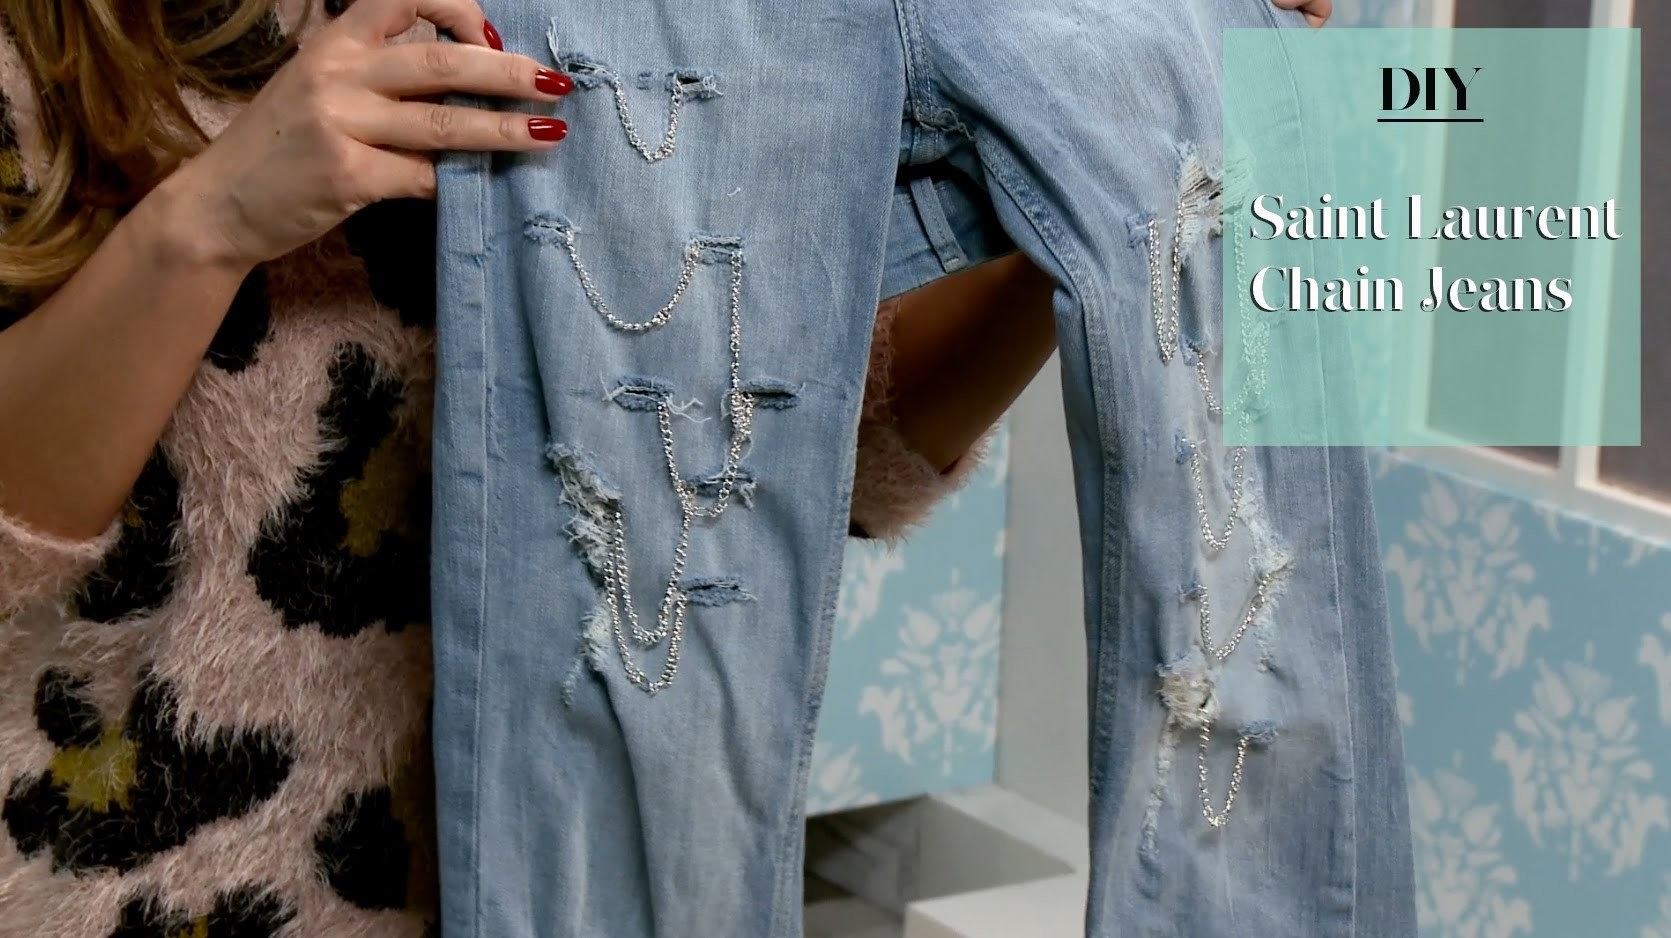 DIY: Saint Laurent Inspired Chain Jeans